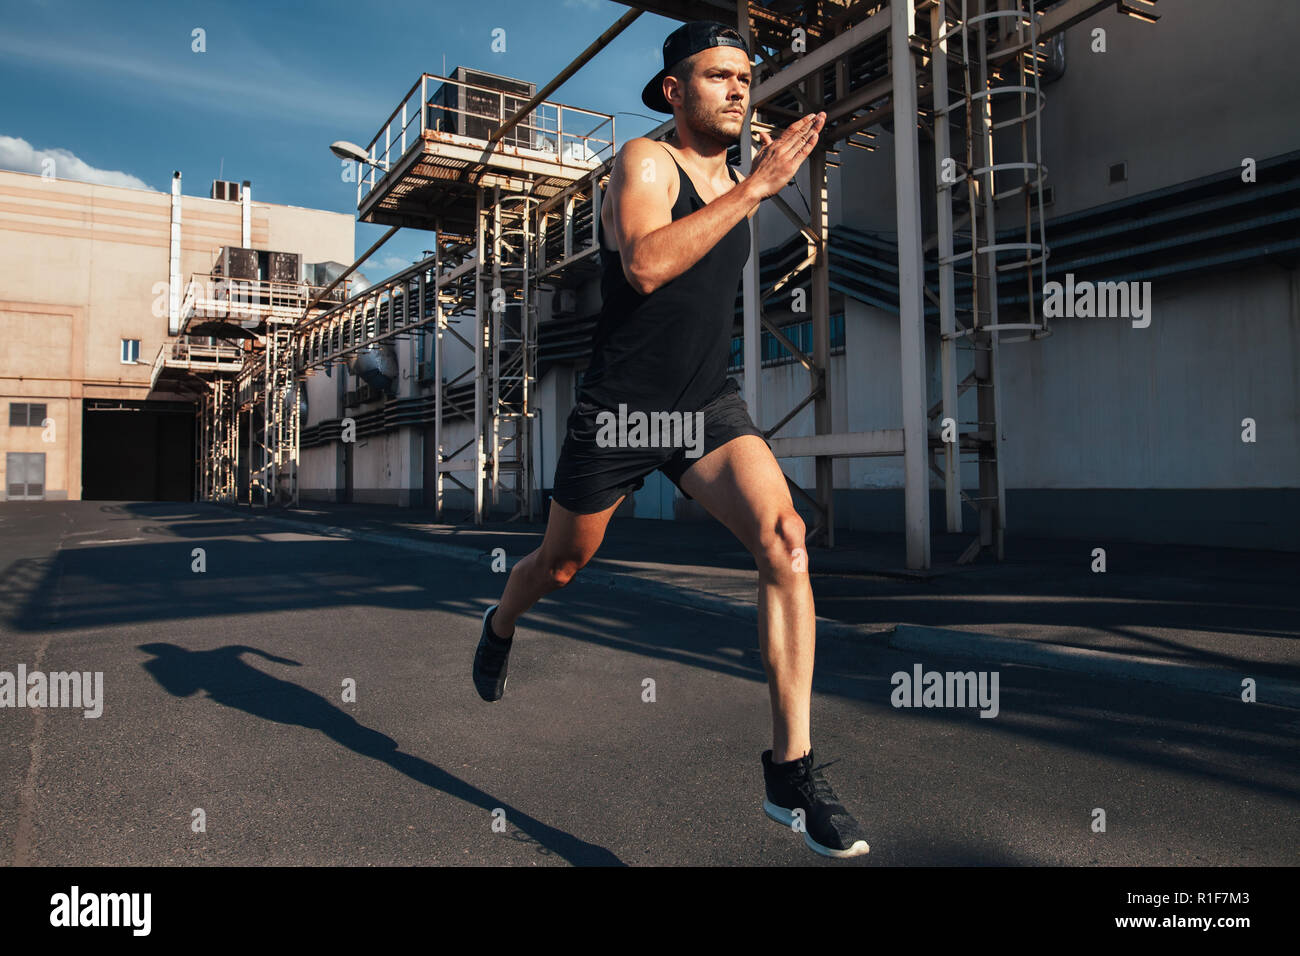 Sporty man running fast in industrial city background. Sport, athletics, fitness, jogging activity - Stock Image